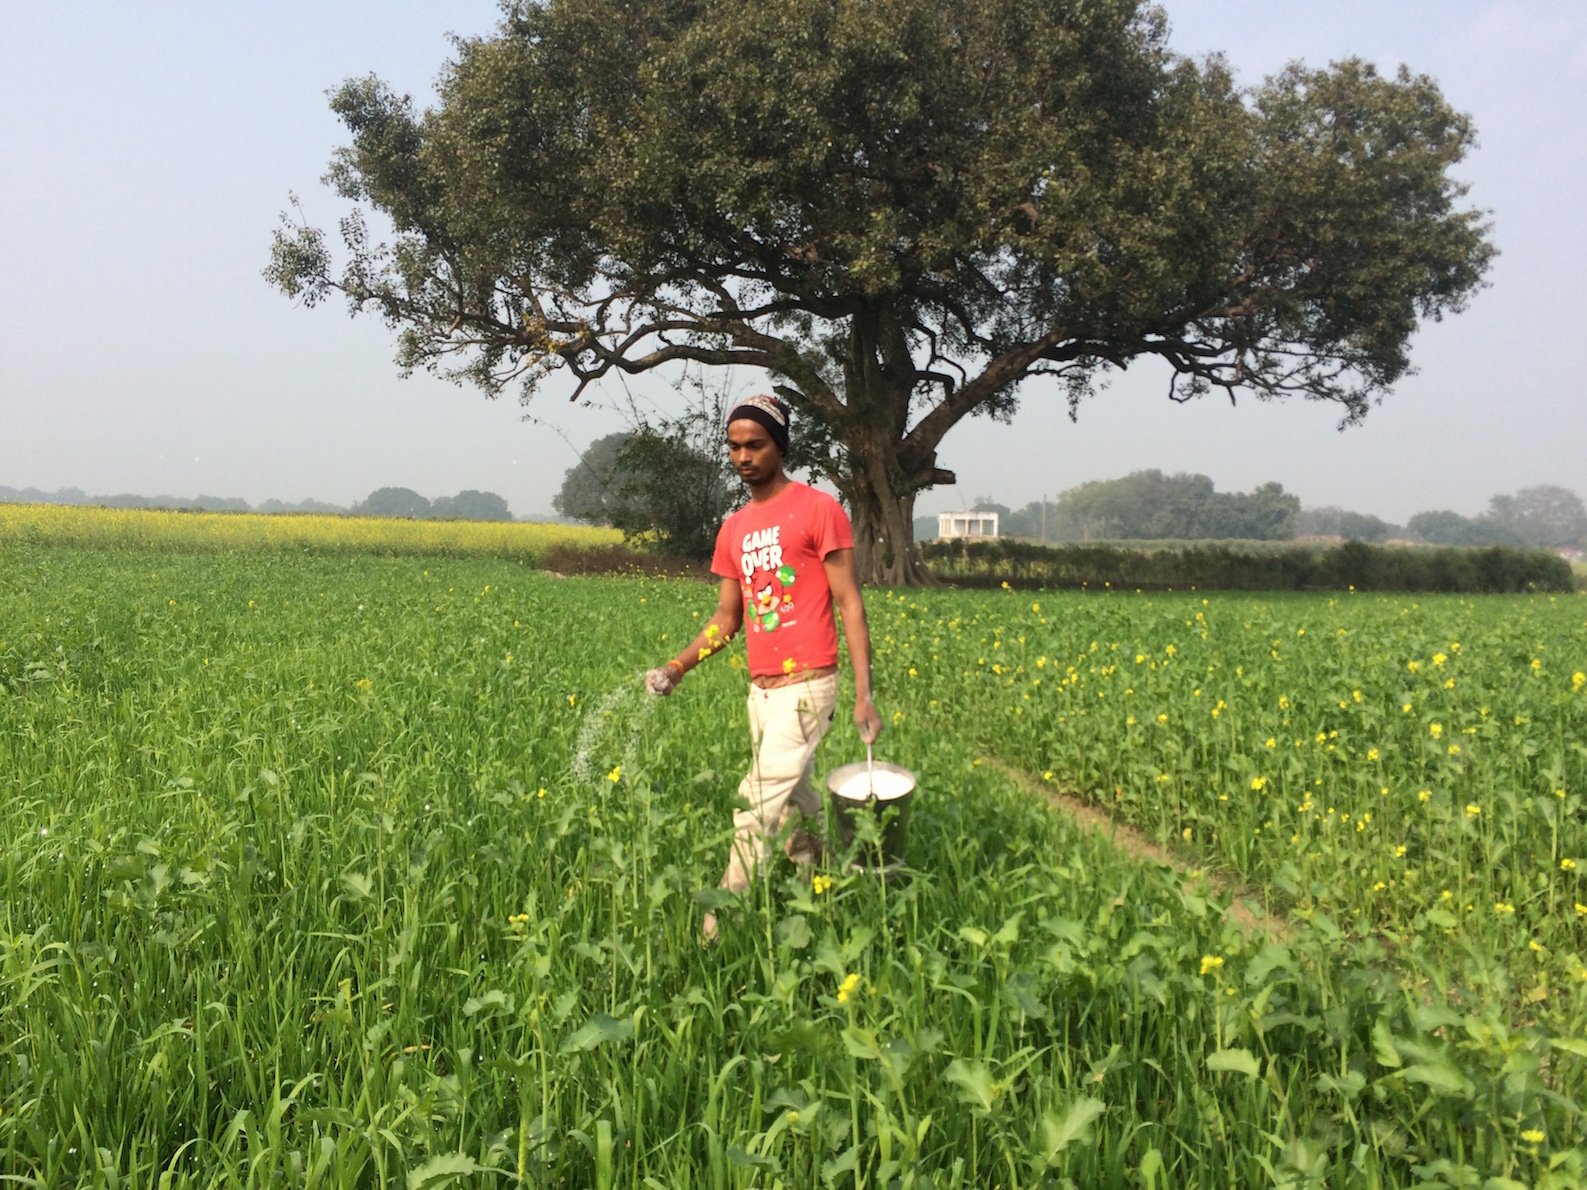 A young man sprinkles urea over wheat fields. Sowing has been delayed in the village.